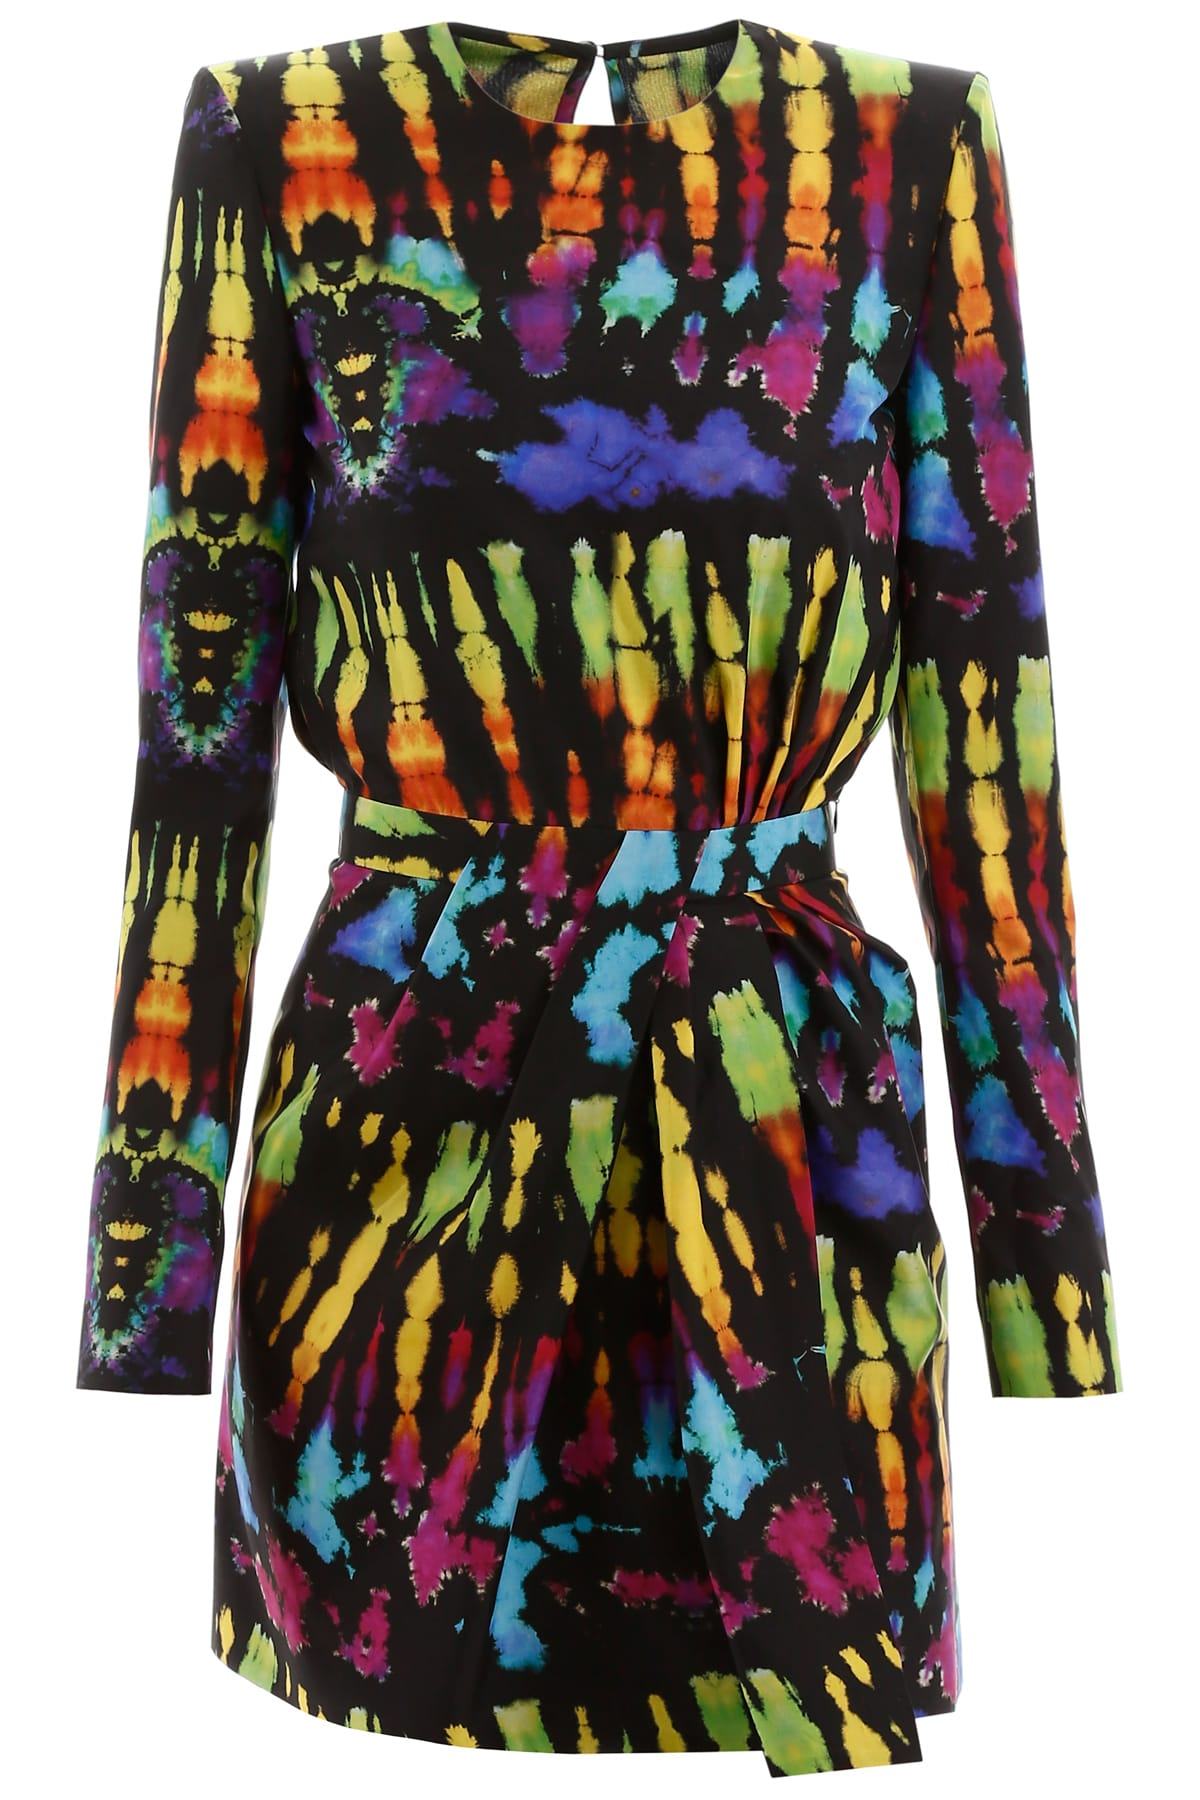 Dsquared2 Tie-dye Dress